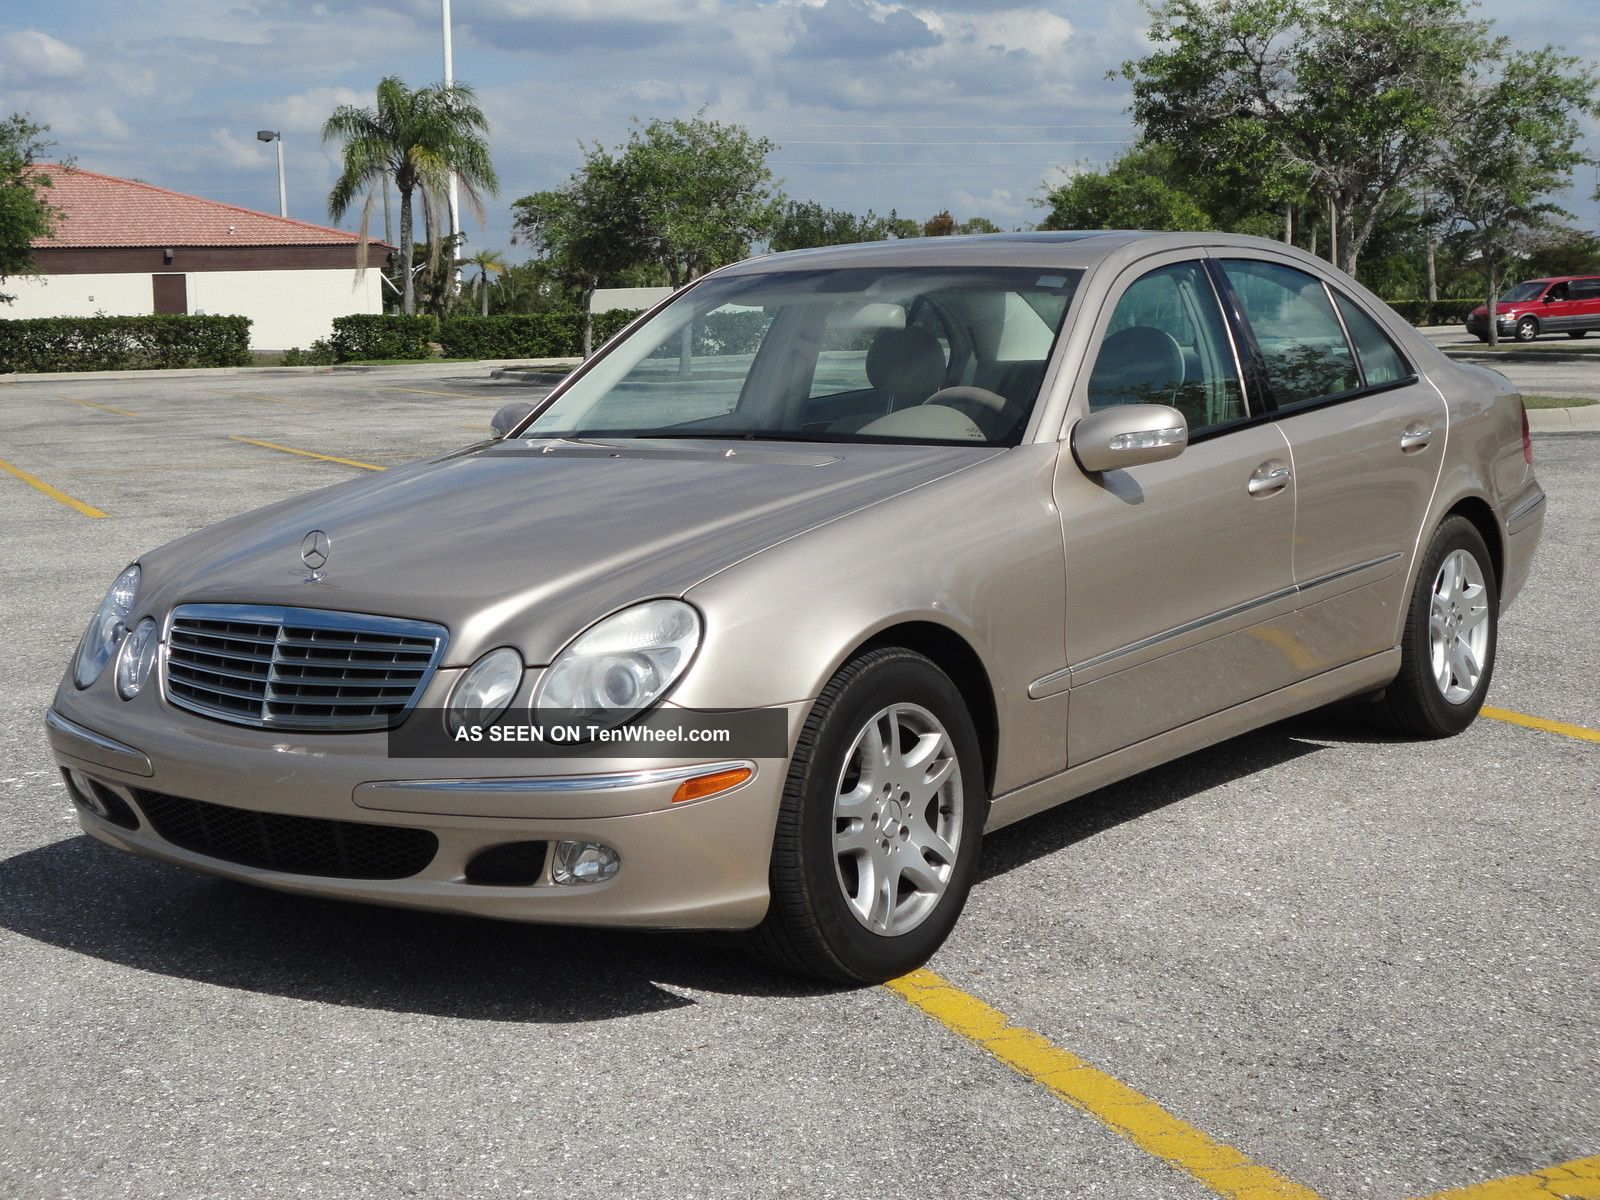 2003 mercedes benz e320 florida car wonderful shape clear title. Black Bedroom Furniture Sets. Home Design Ideas